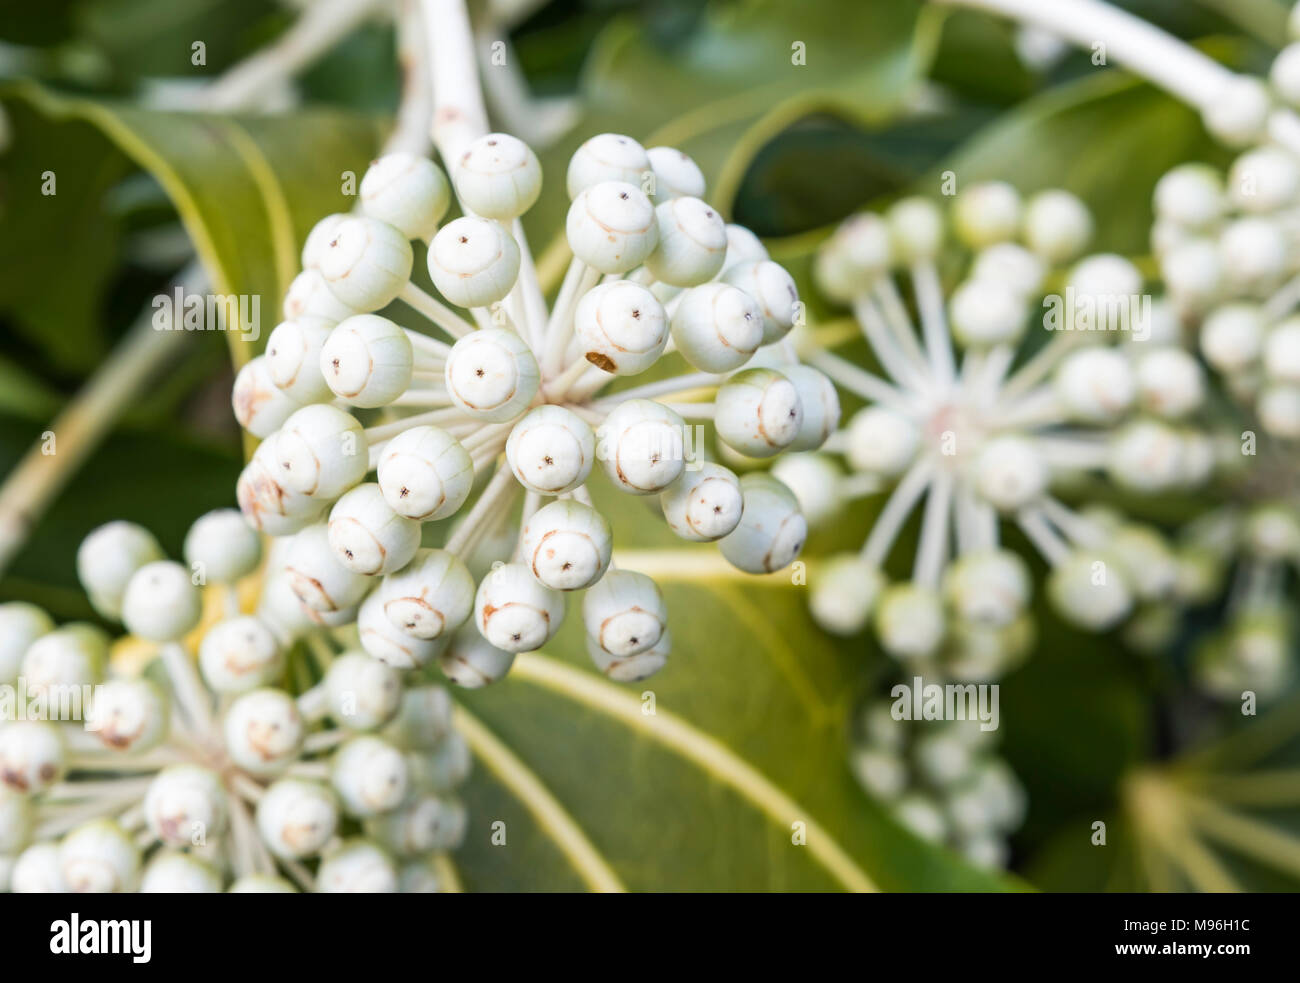 Fatsia japonica japanese aralia castor oil plant macro closeup fatsia japonica japanese aralia castor oil plant macro closeup with white flower heads growing in late winter in west sussex england uk mightylinksfo